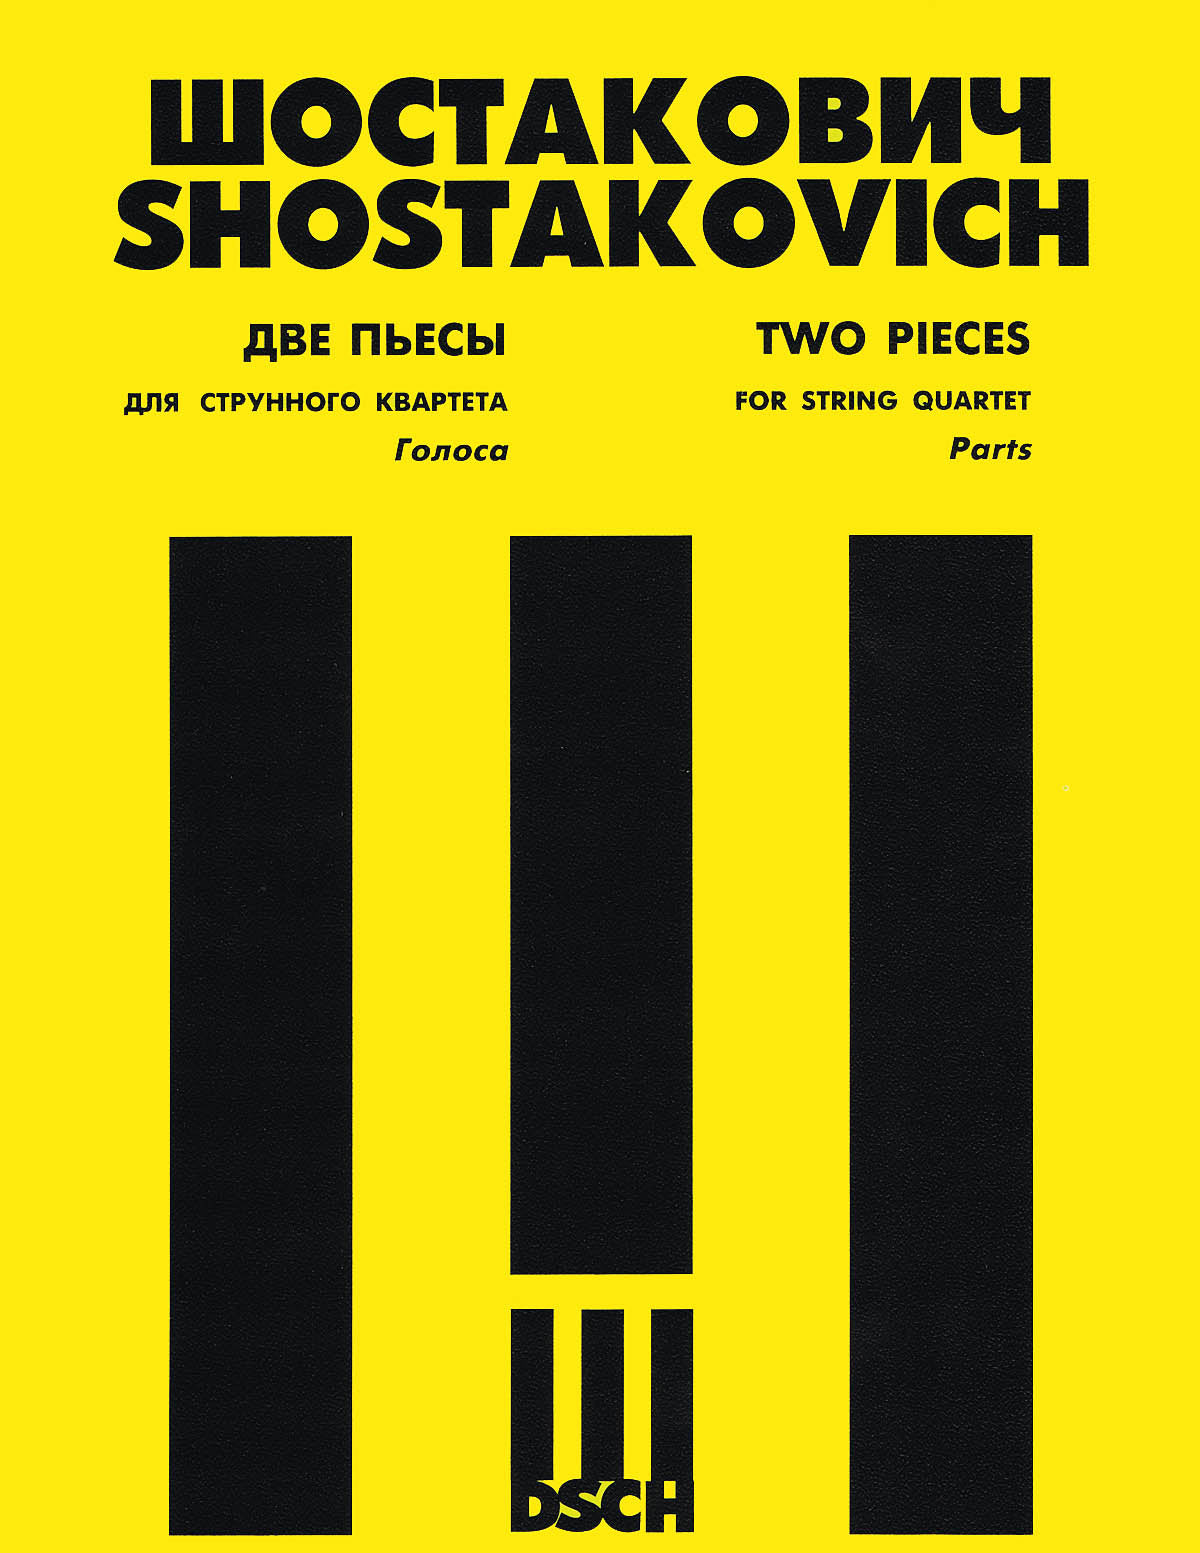 Shostakovich: 2 Pieces for String Quartet (Elegy and Polka)